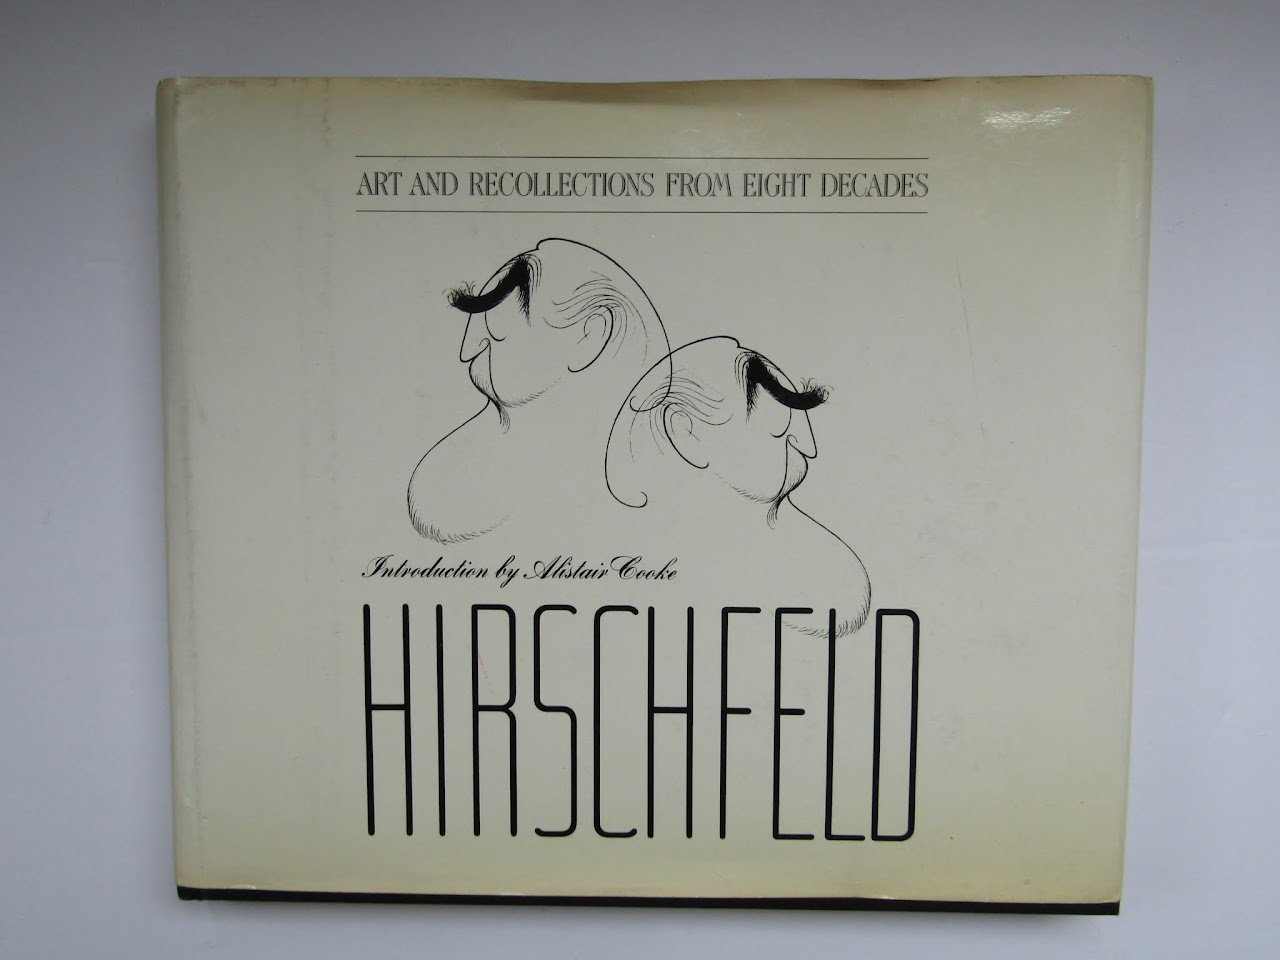 Hirschfeld: Art & Recollections from Eight Decades- 1st edition